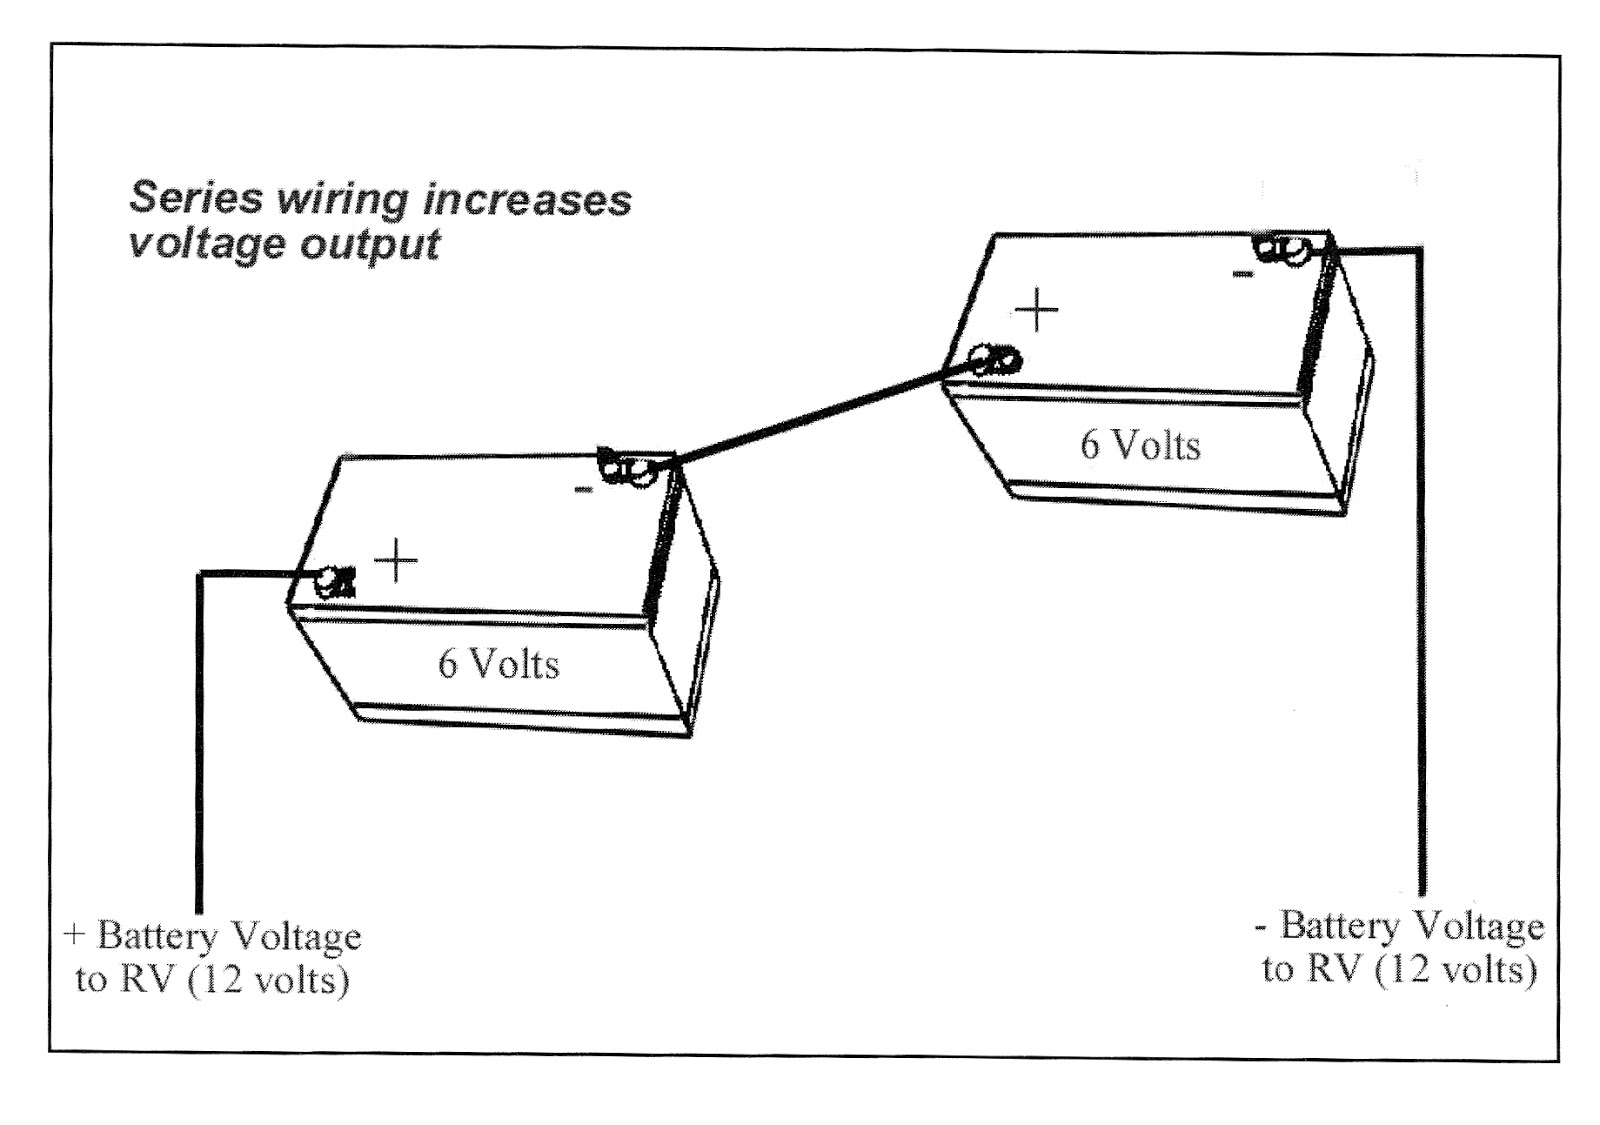 battery+series+wiring+diagram penny's tuppence (2 cents in brit) rv transmission 12v to 6v 12 volt battery wiring diagram at honlapkeszites.co